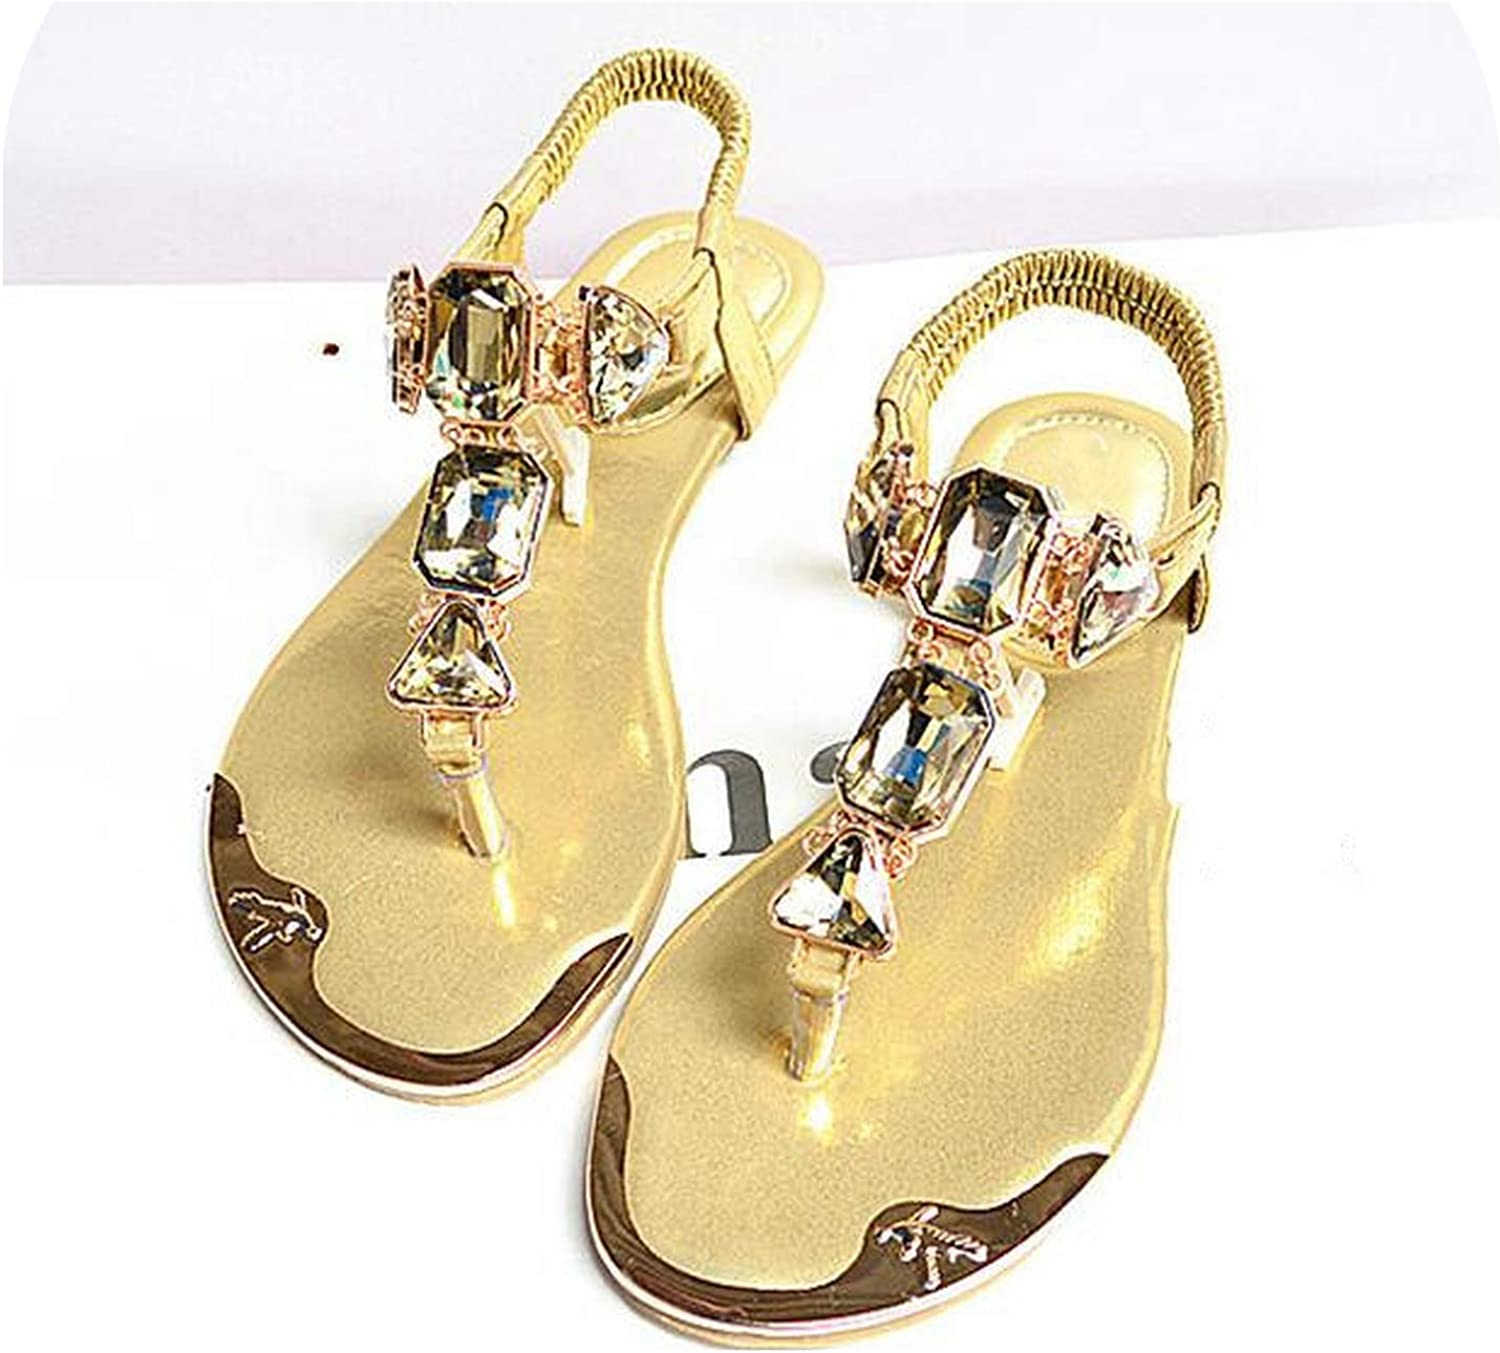 shoes Women Sandals Fashion Rhinestone Summer shoes gold Women Sandals Clip Toe Women shoes Sandalia Feminina